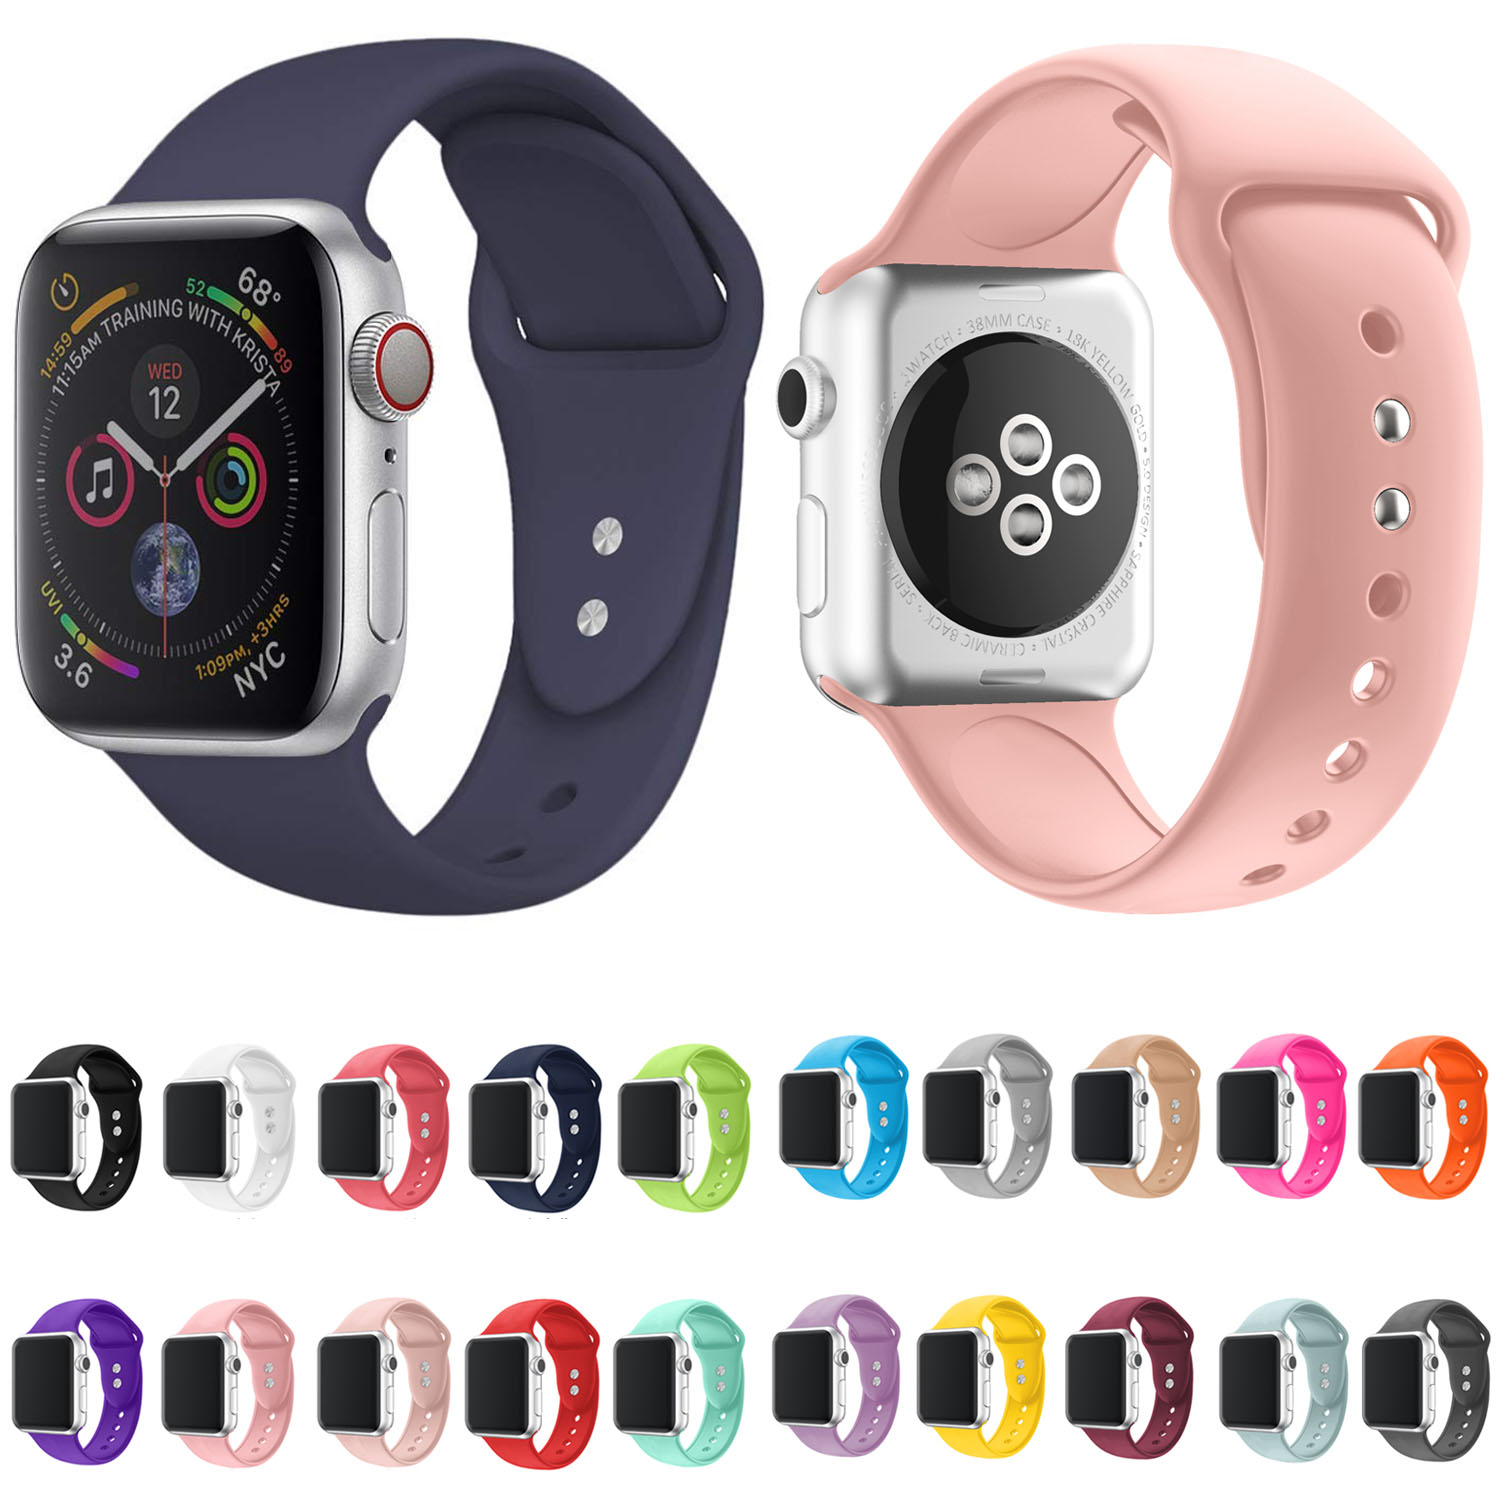 Silicone Band For Apple Watch 38mm 42mm 40mm 44mm Replacement Sport Strap Rubber Wristband For IWatch Series 5 4 3 2 1 Watchband